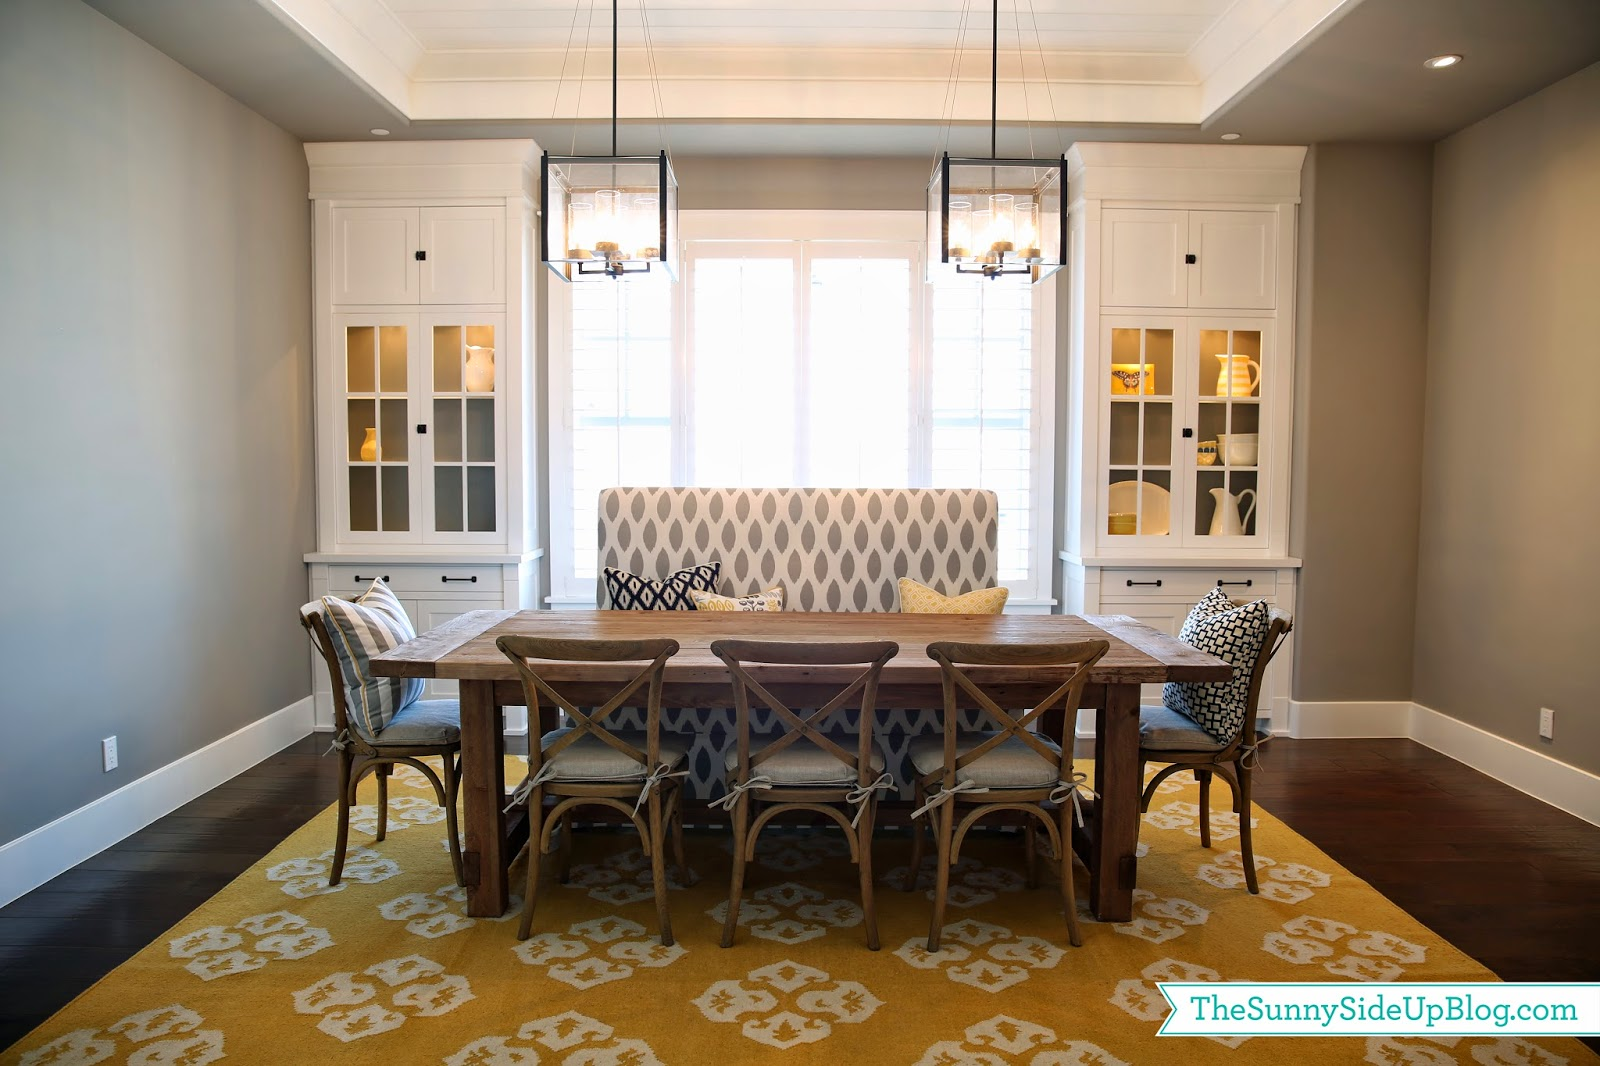 Need help with my dining room - Dining Room Decor Update Bench Chairs Pillows The Sunny Side Up Blog